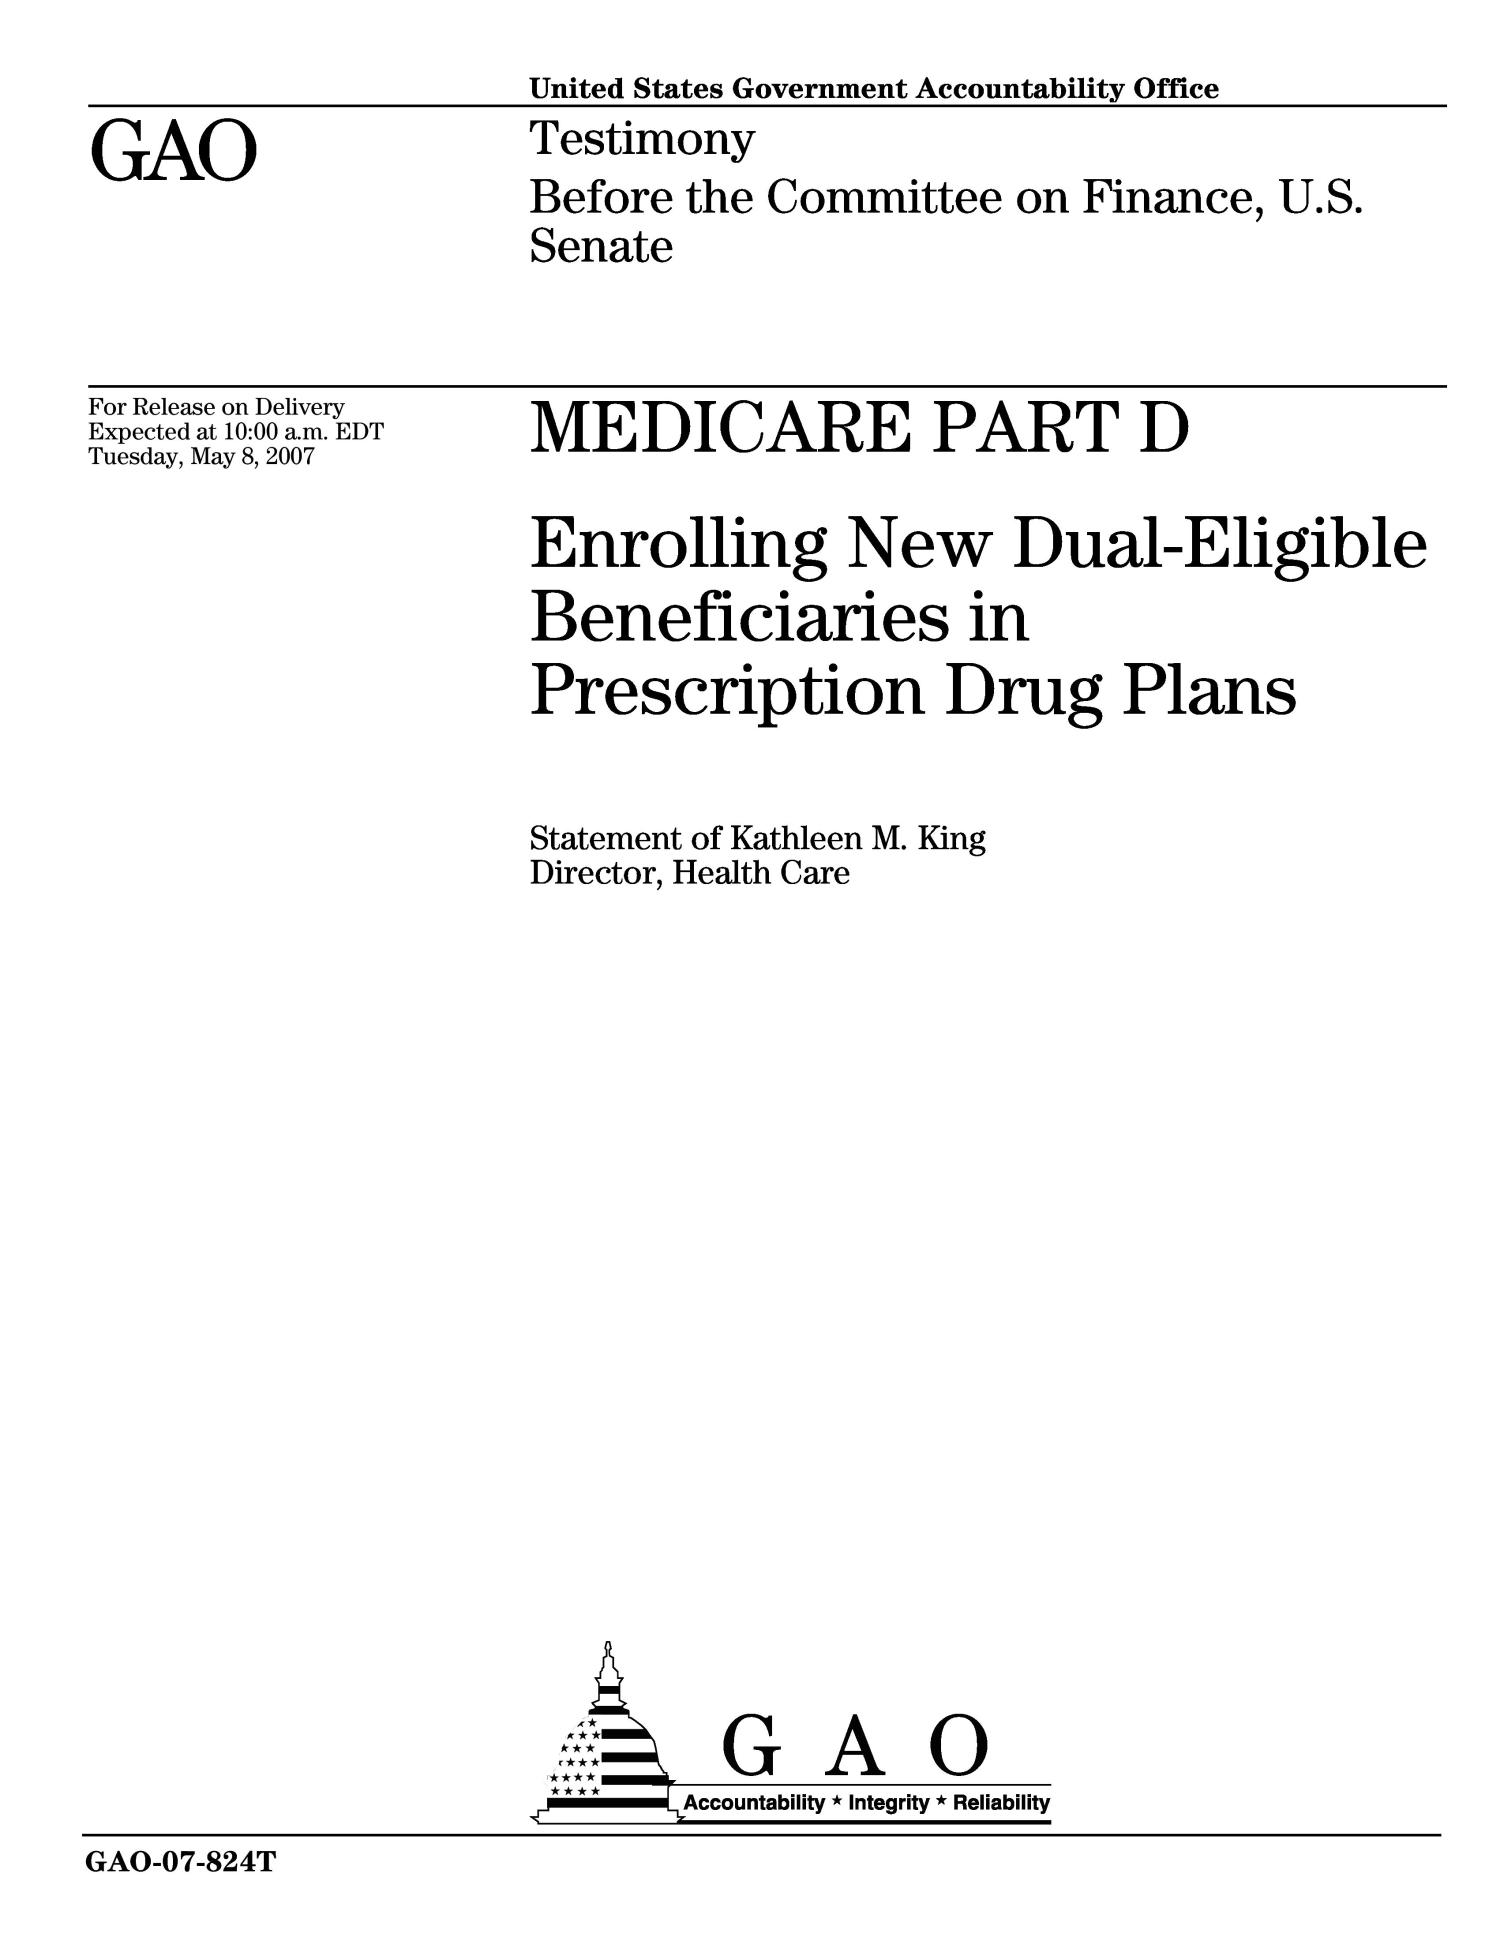 Medicare Part D: Enrolling New Dual-Eligible Beneficiaries in Prescription Drug Plans                                                                                                      [Sequence #]: 1 of 15